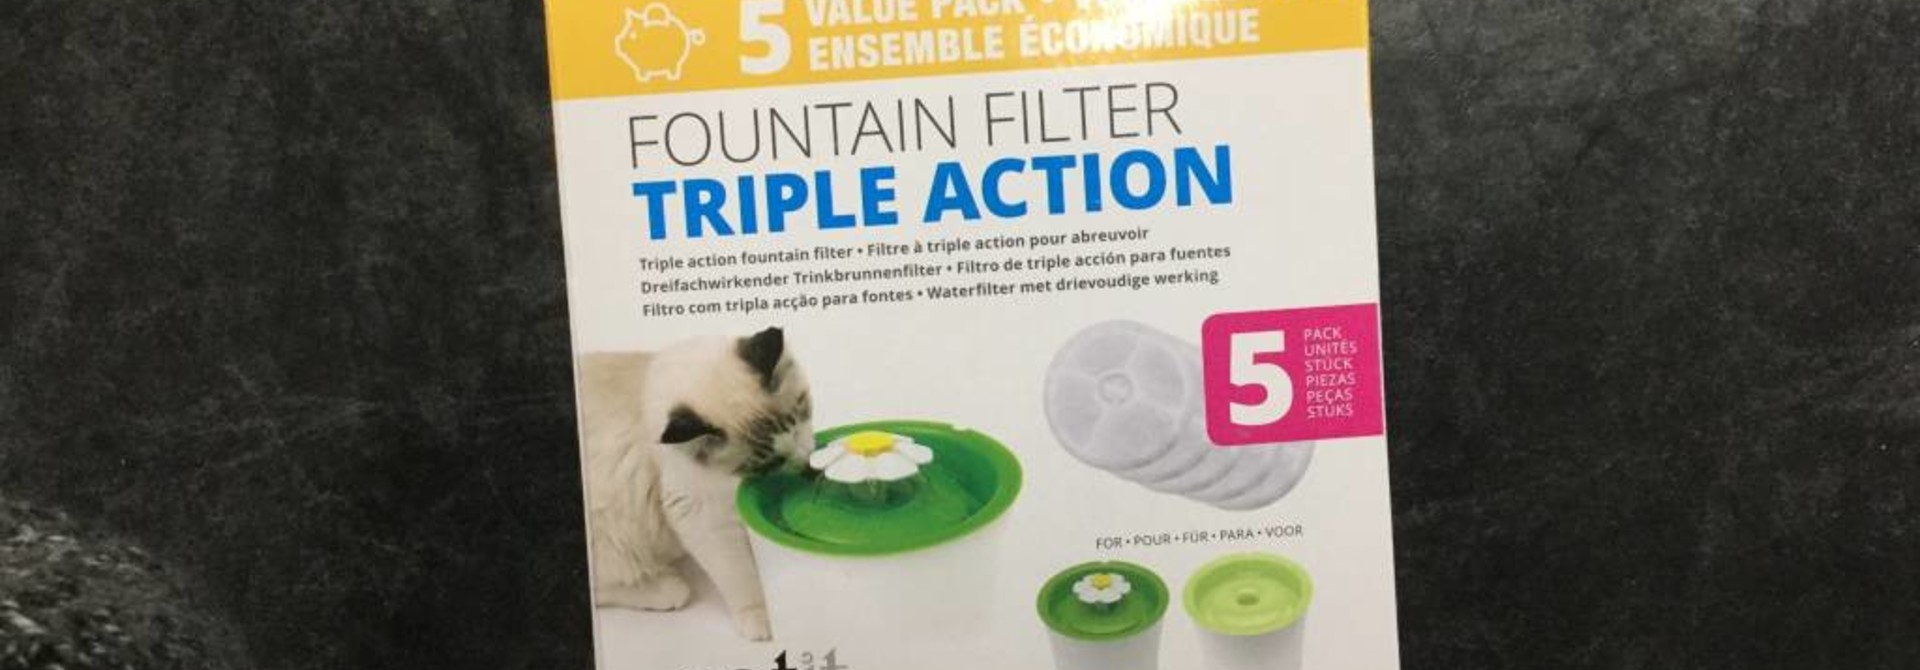 CA 2.0 Triple Action Fountain Filter, 5pk